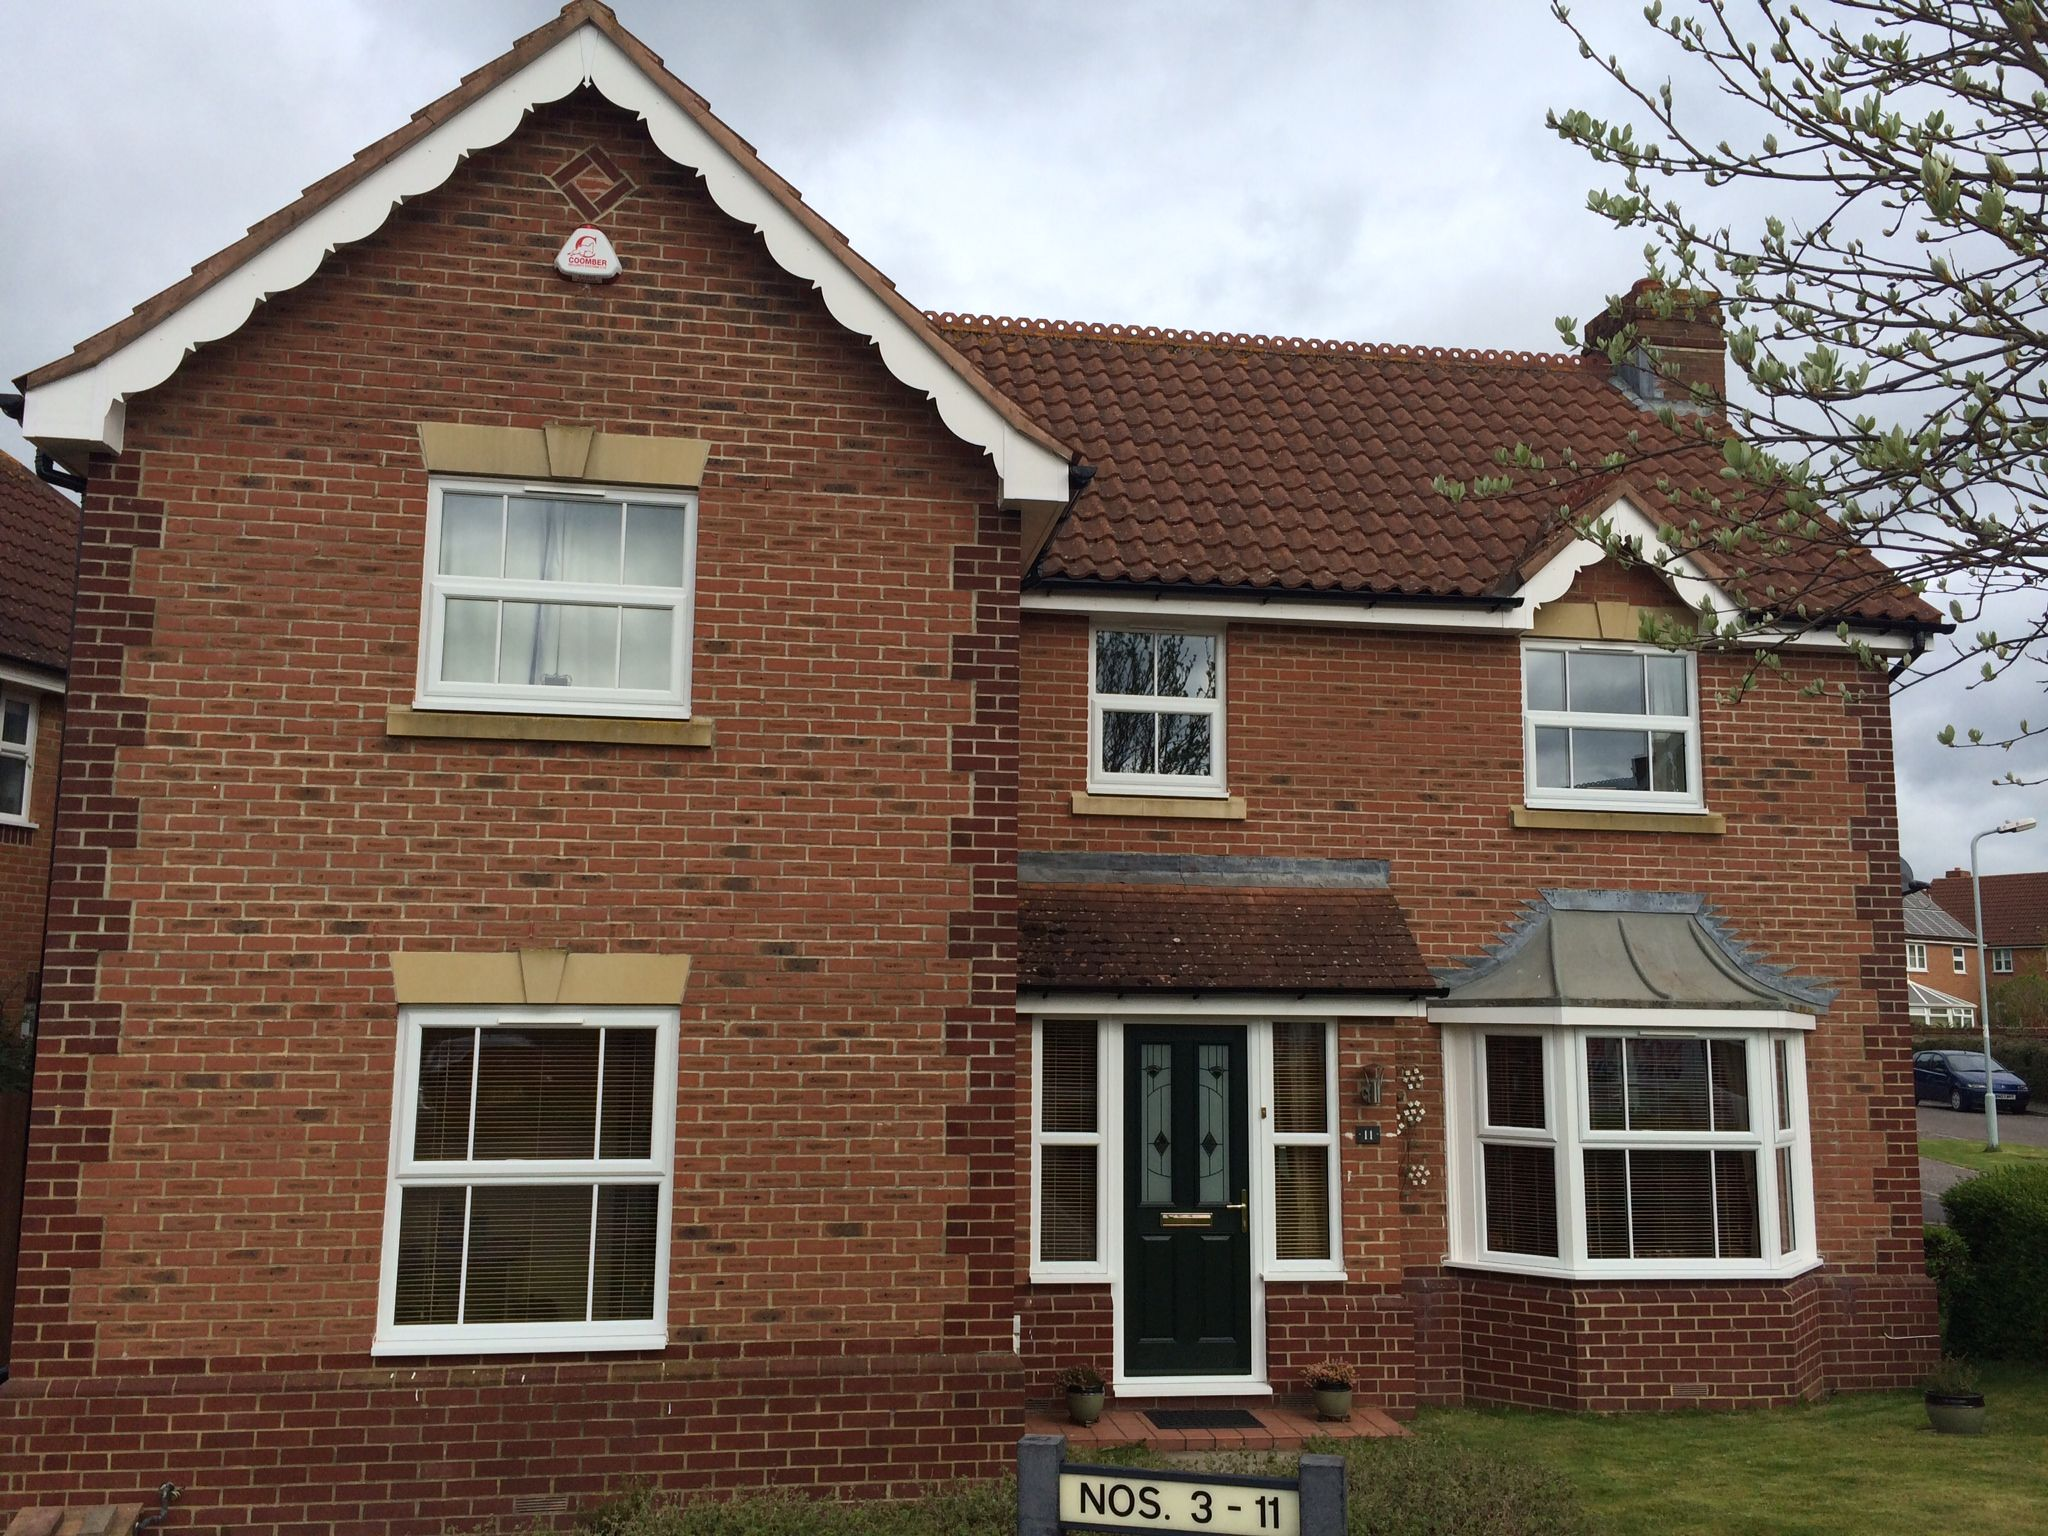 Best White Casement Windows In Somerset Roof Tiles Clay Roof 400 x 300